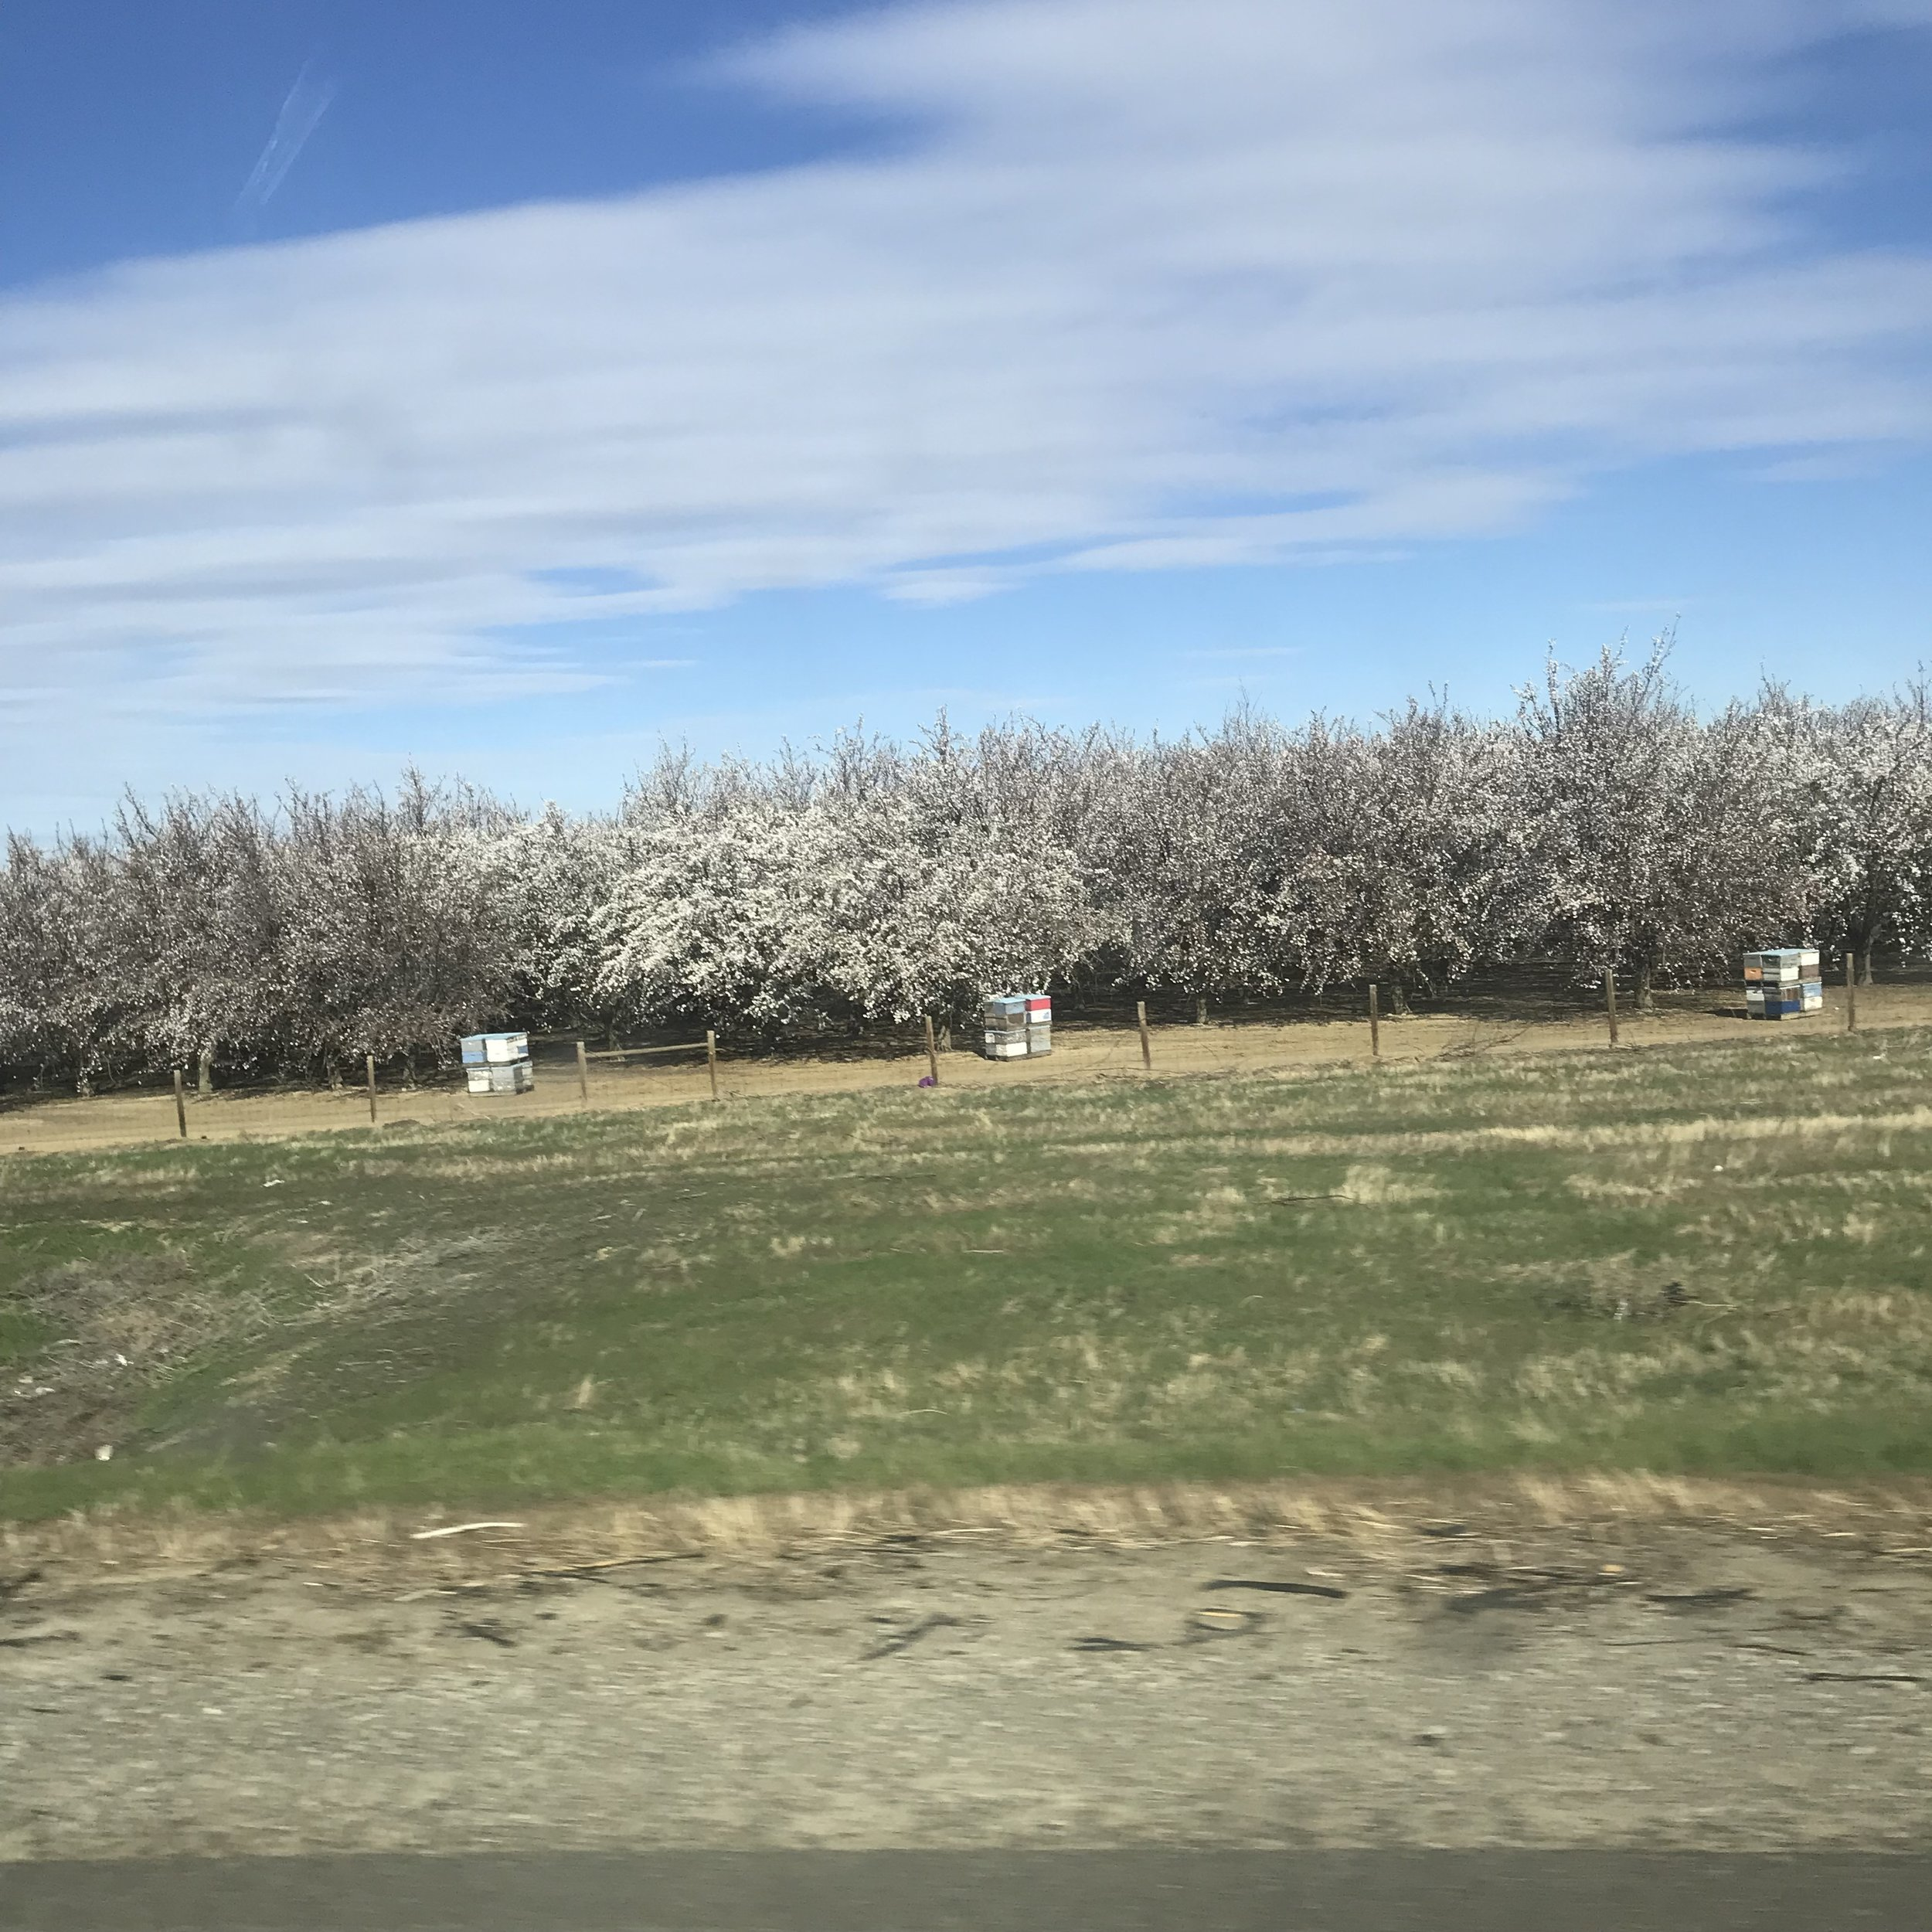 Beehives pollinating all the almond blossoms in California